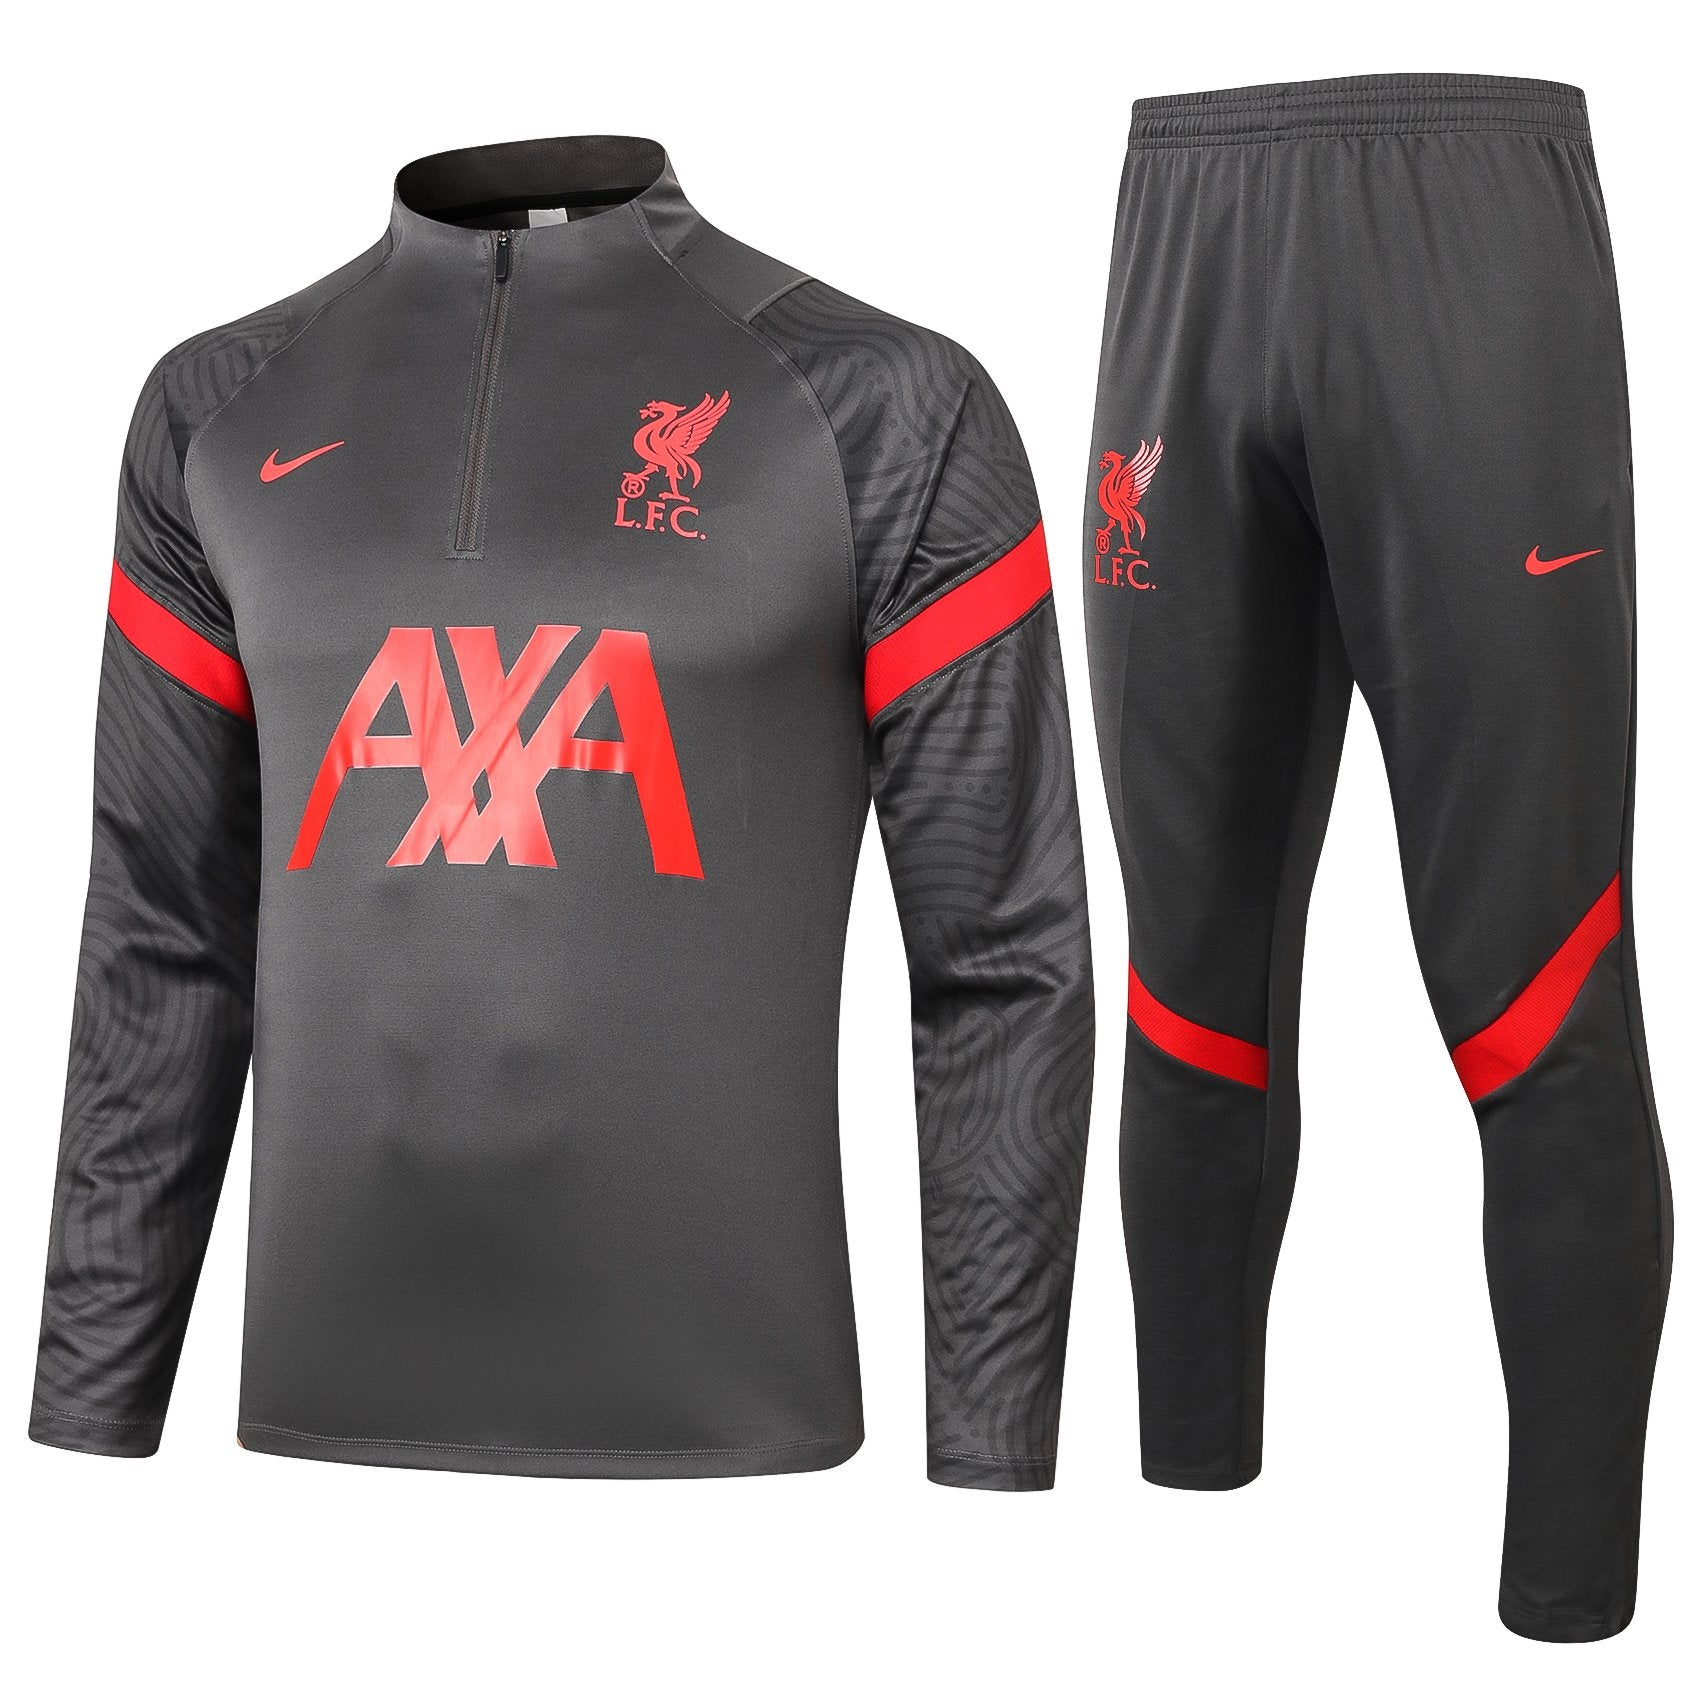 Survetement Liverpool Nike Gris 2021 Homme Foot Online freeshipping - Foot Online